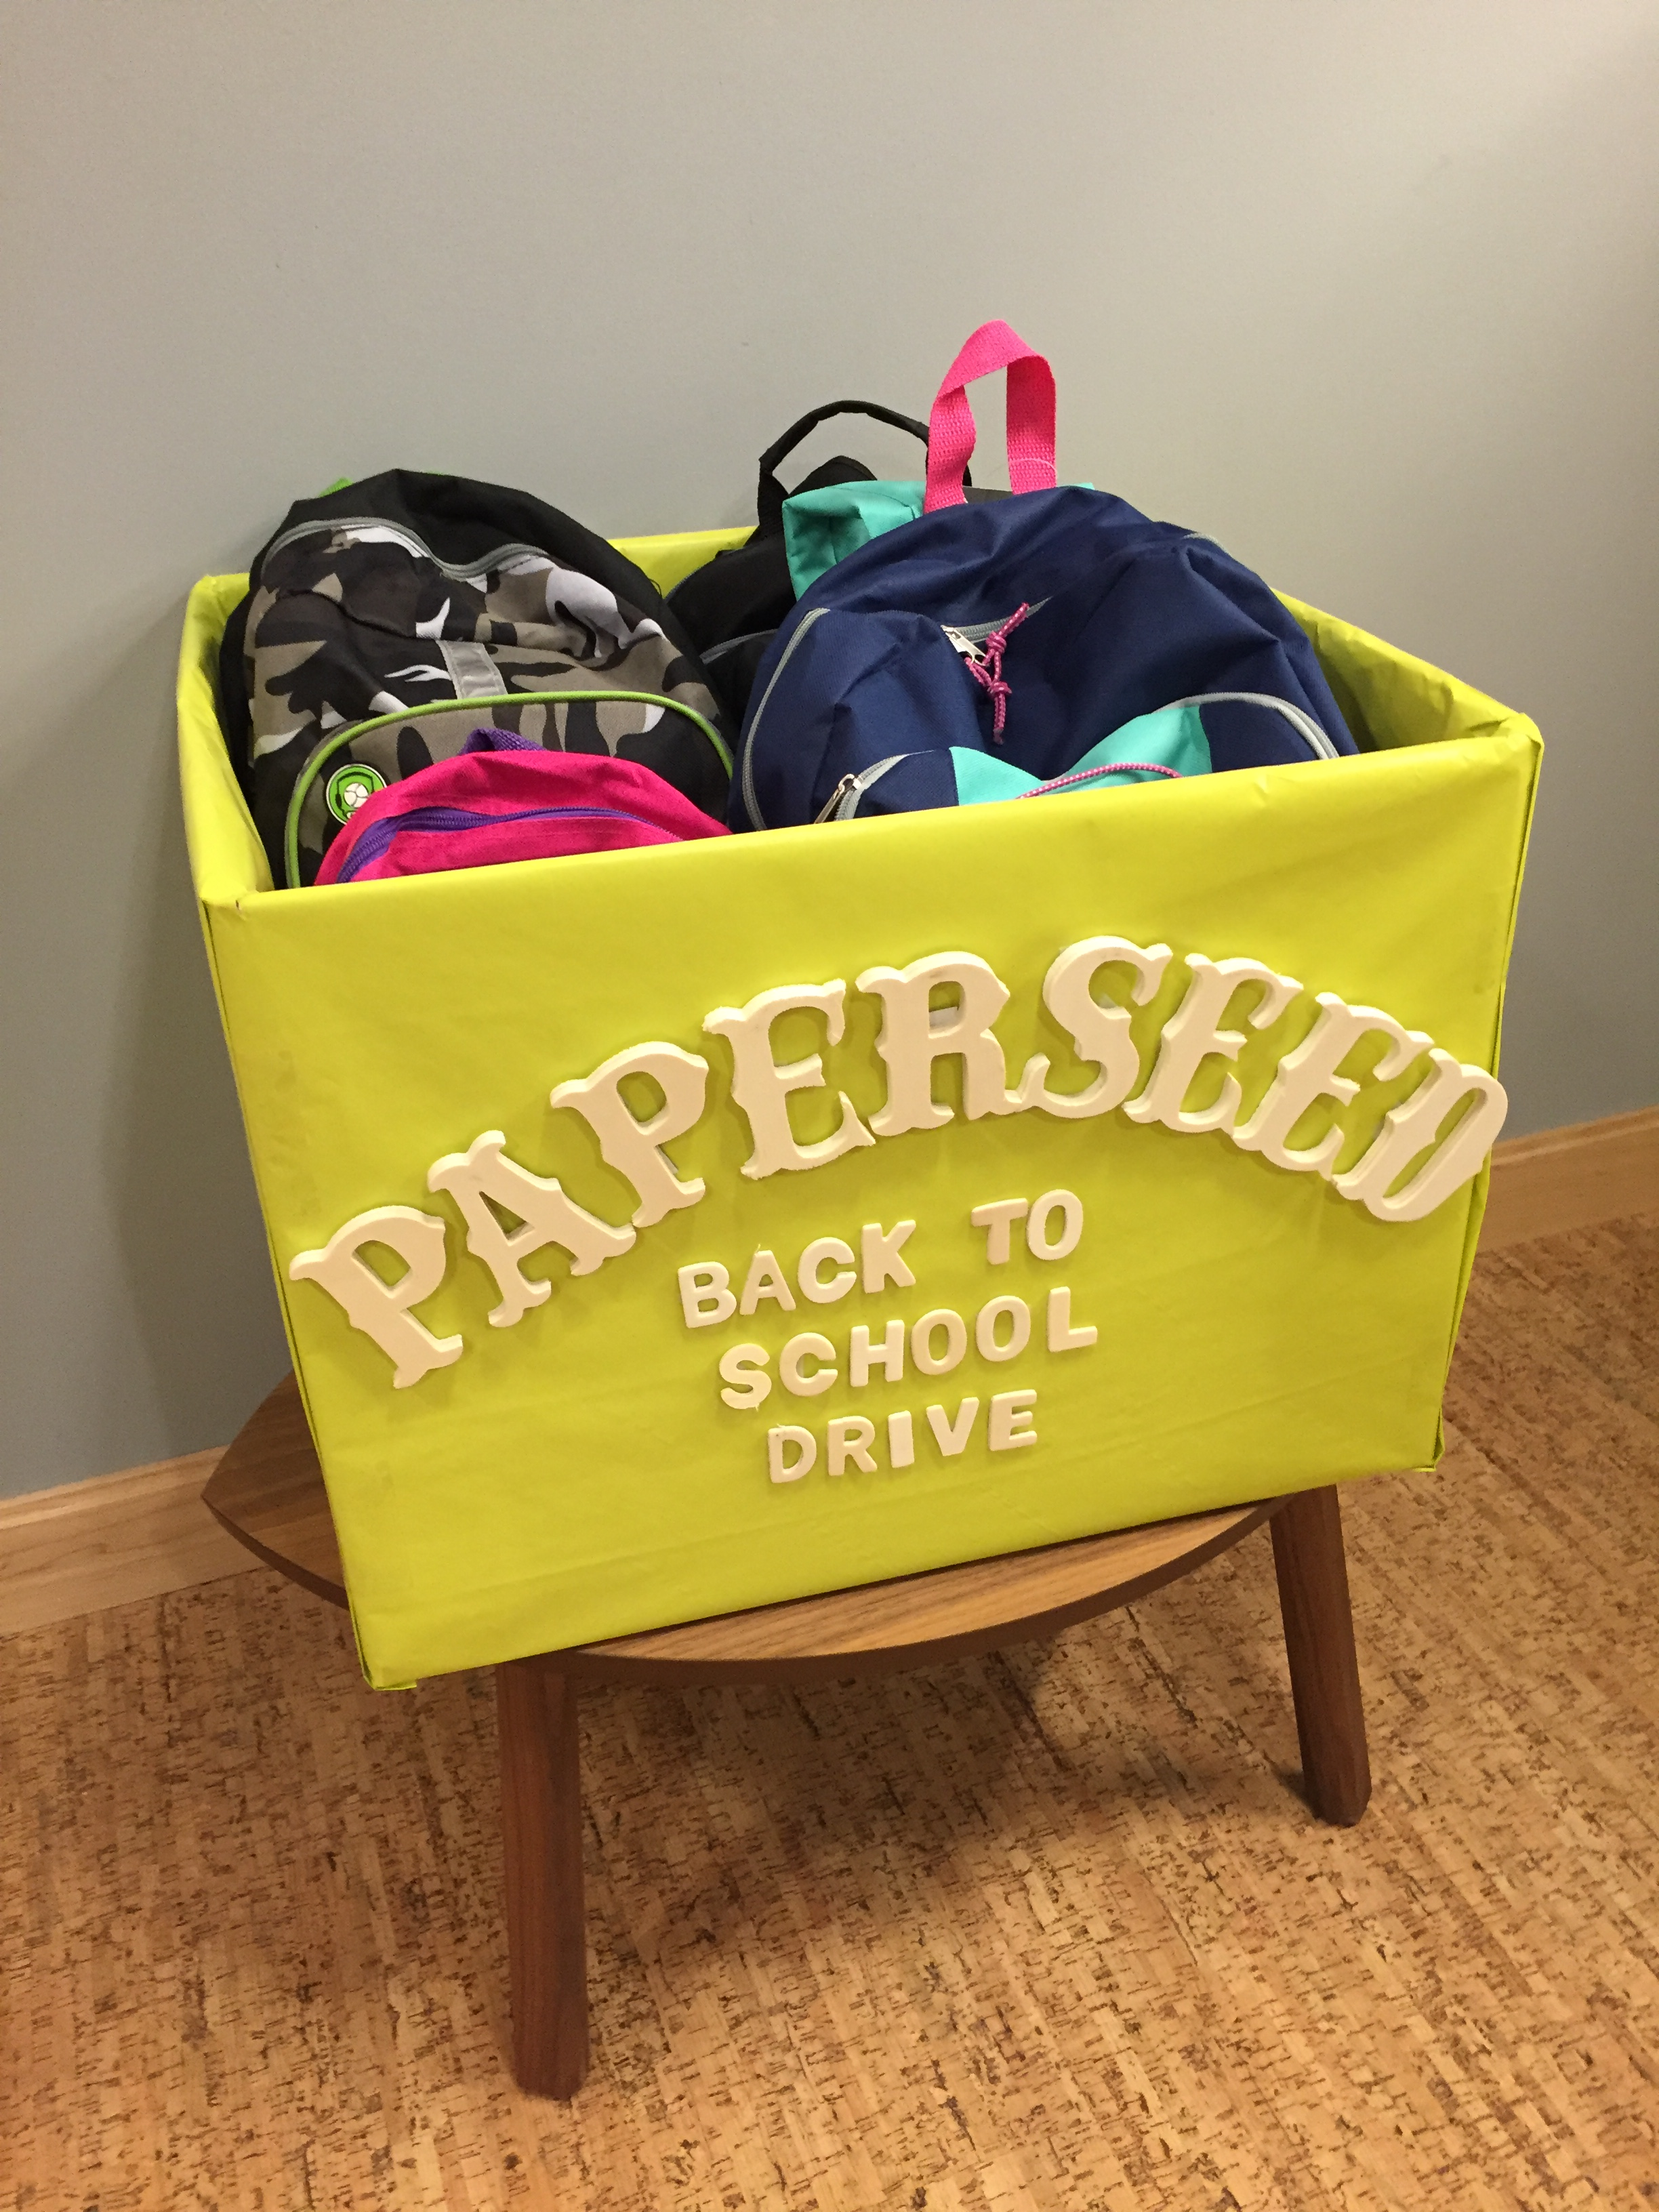 2016 Back-to-School Drive